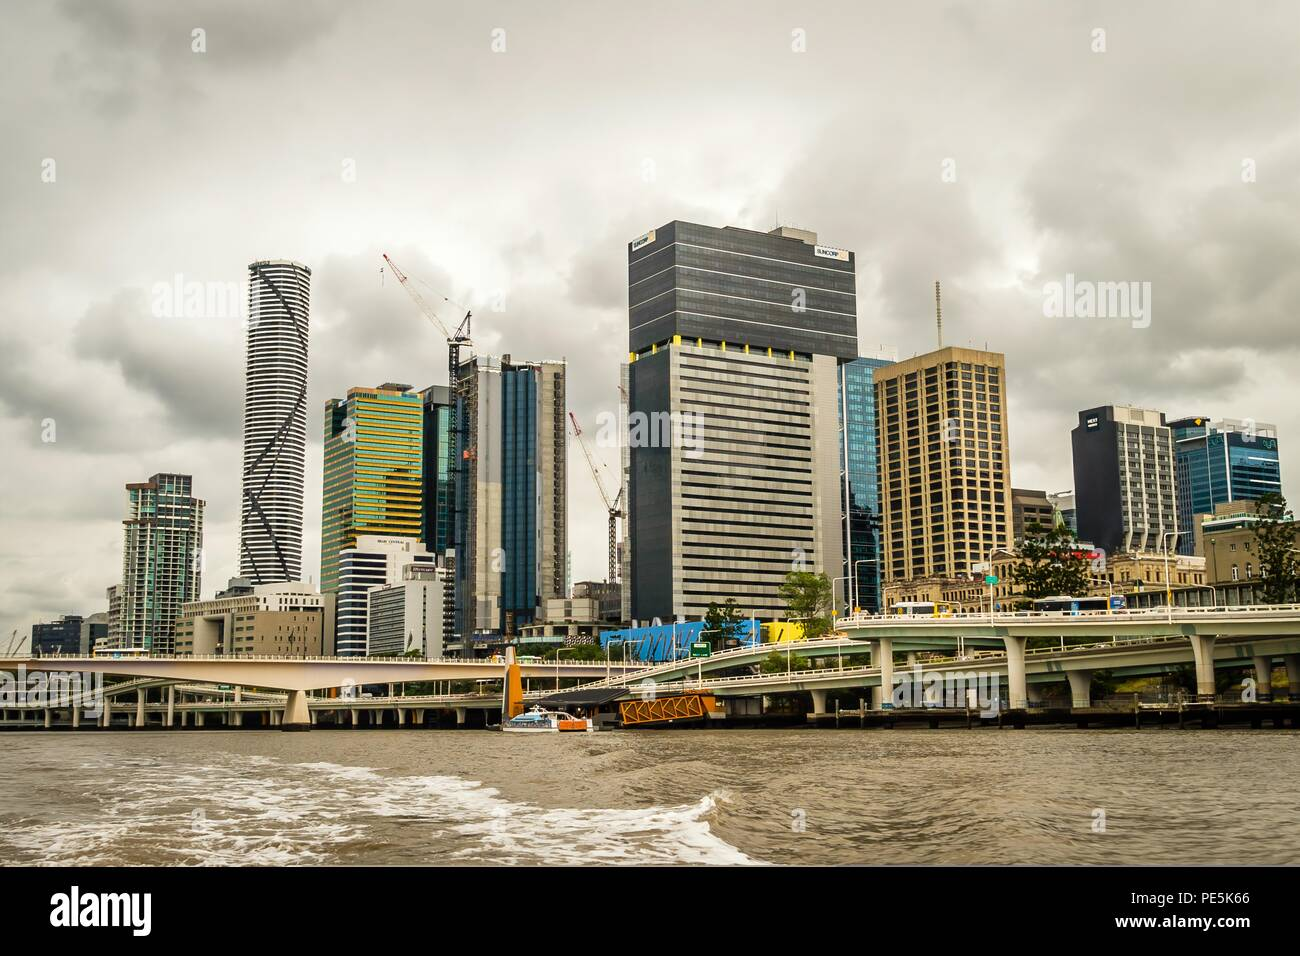 Brisbane skyline seen from a boat on the river - Stock Image